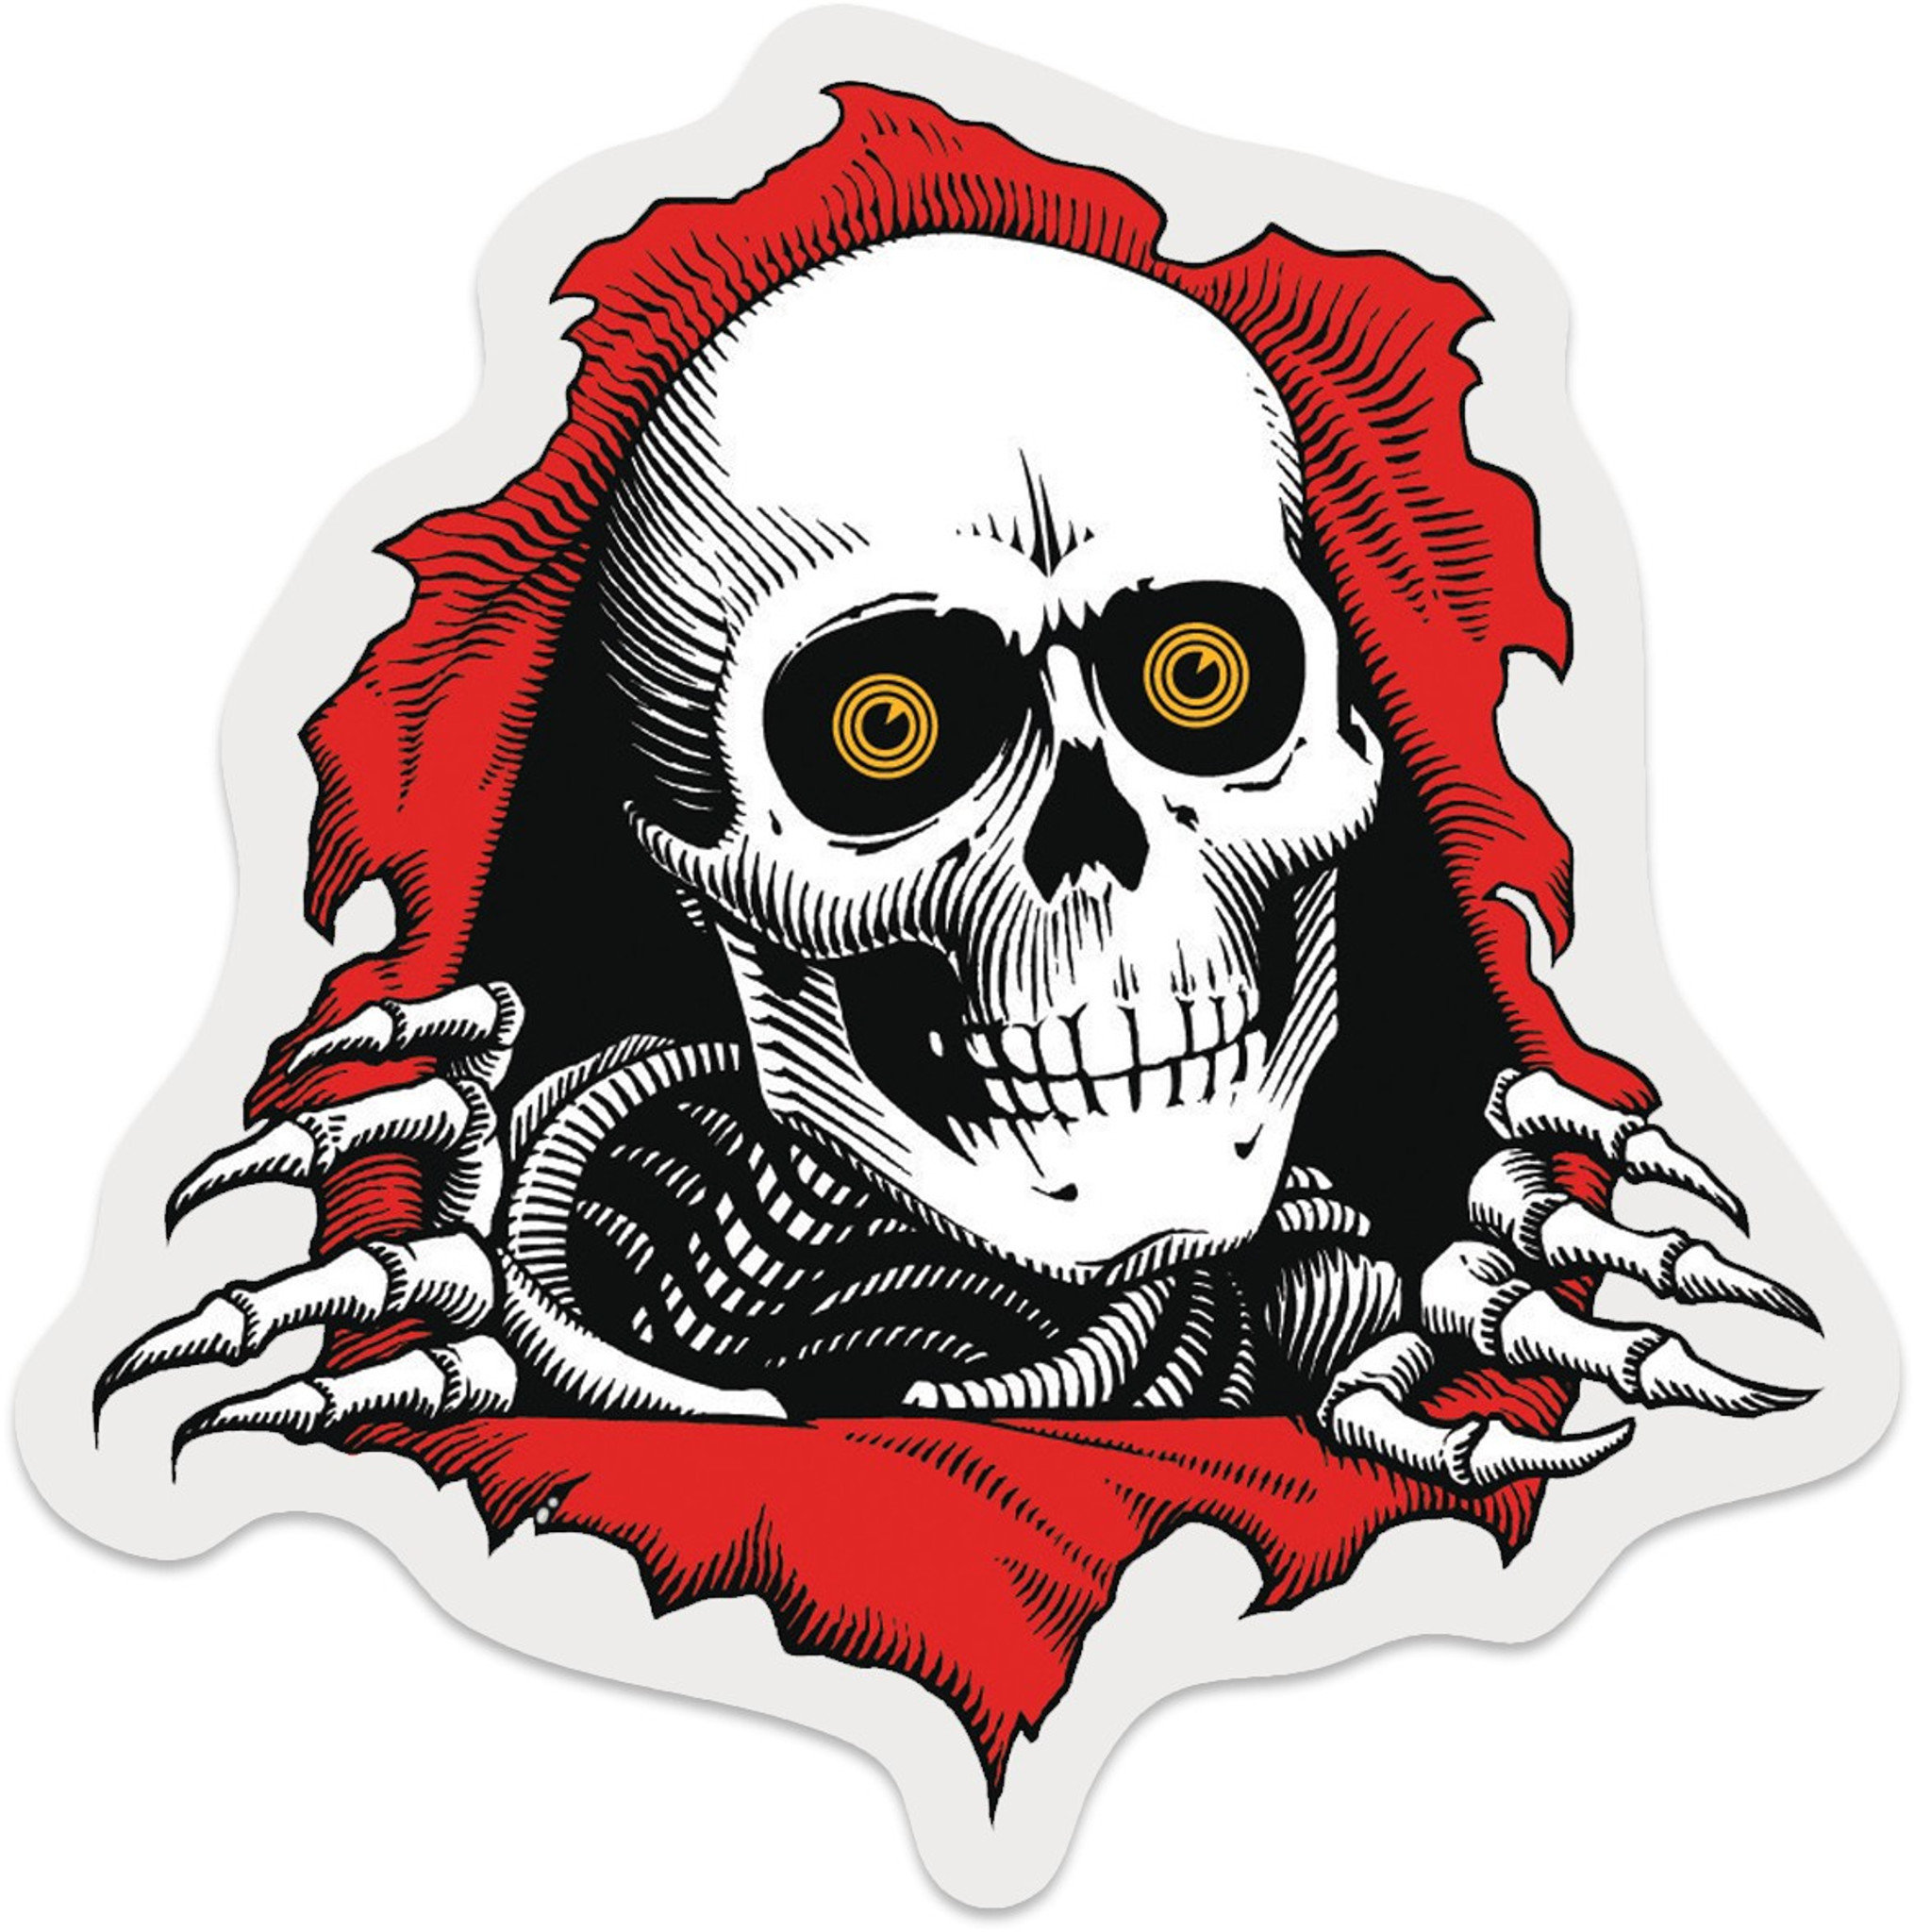 Ripper sticker 92529 1522847386 jpgc2